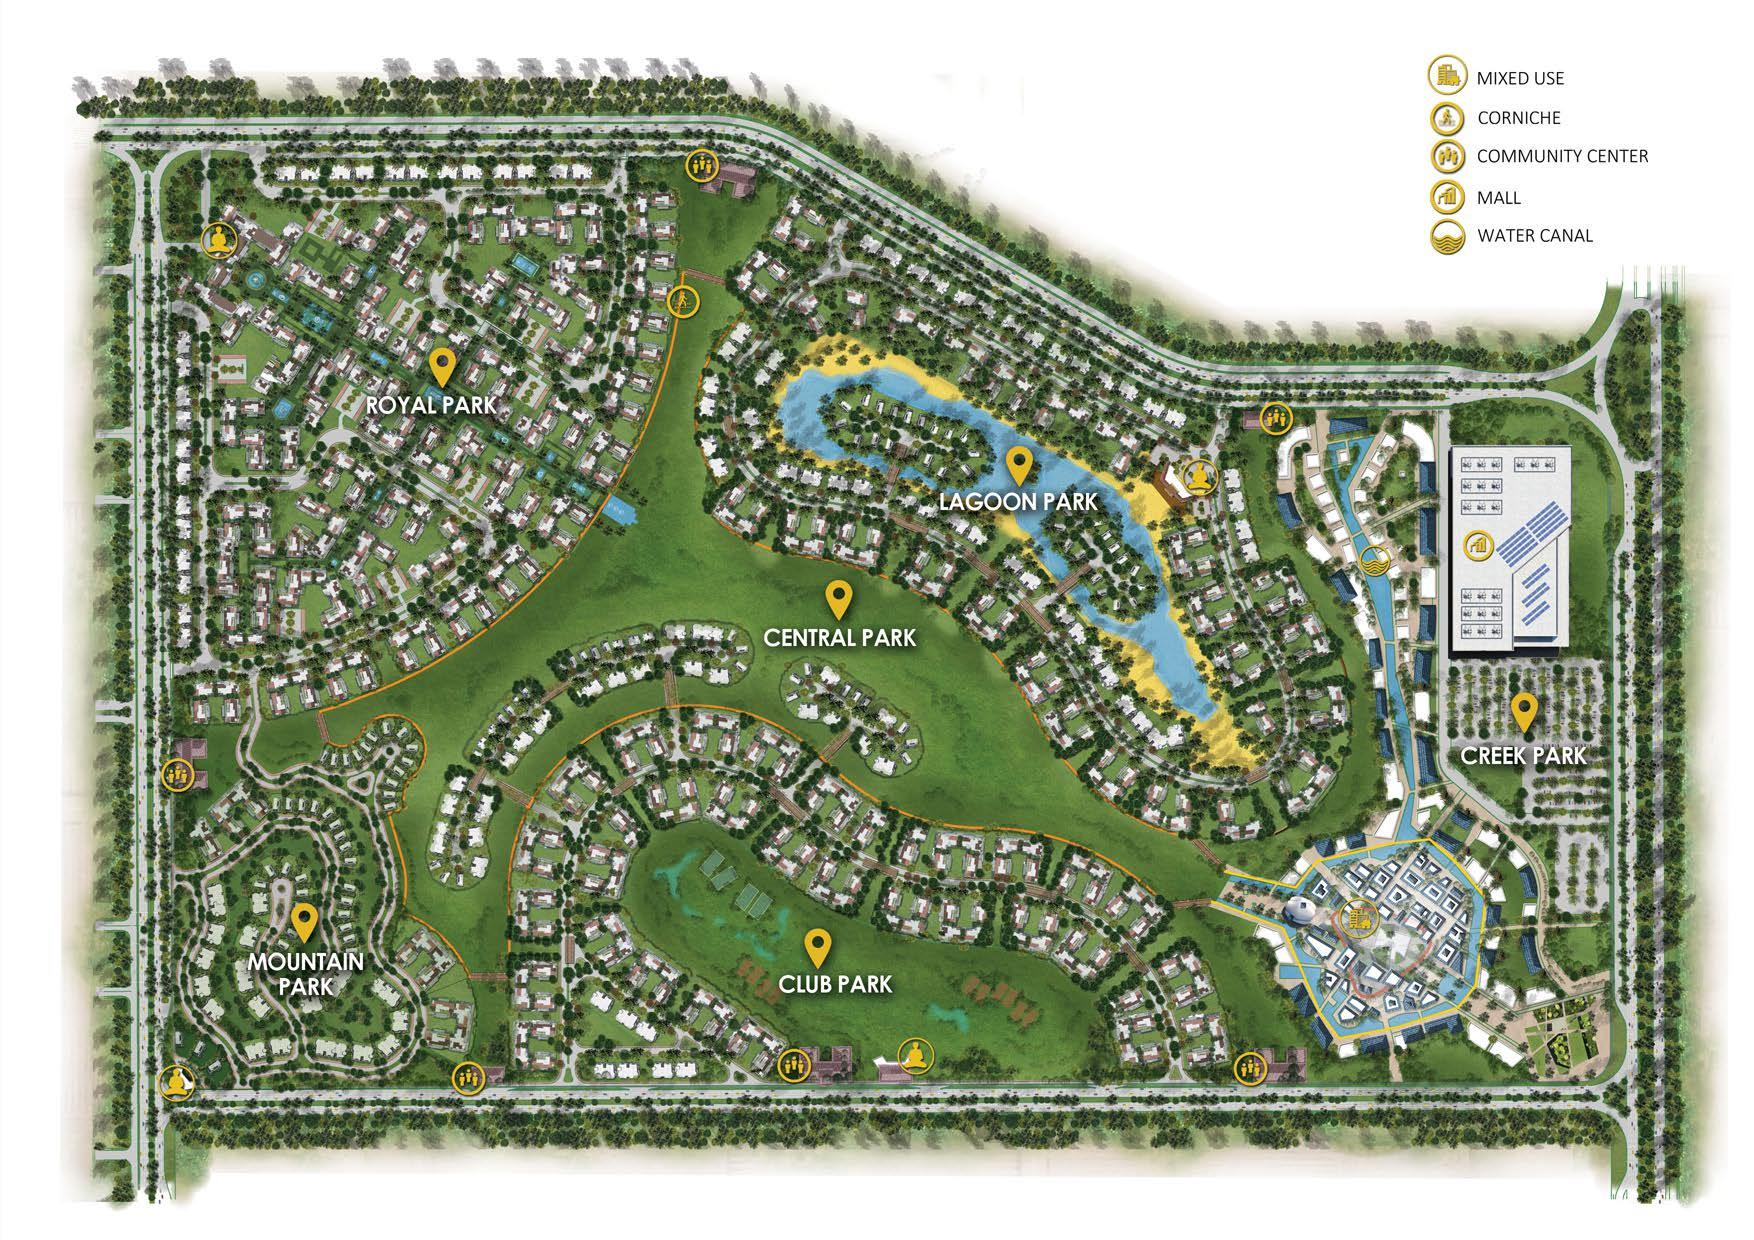 Details-icity-new-cairo-master-plan